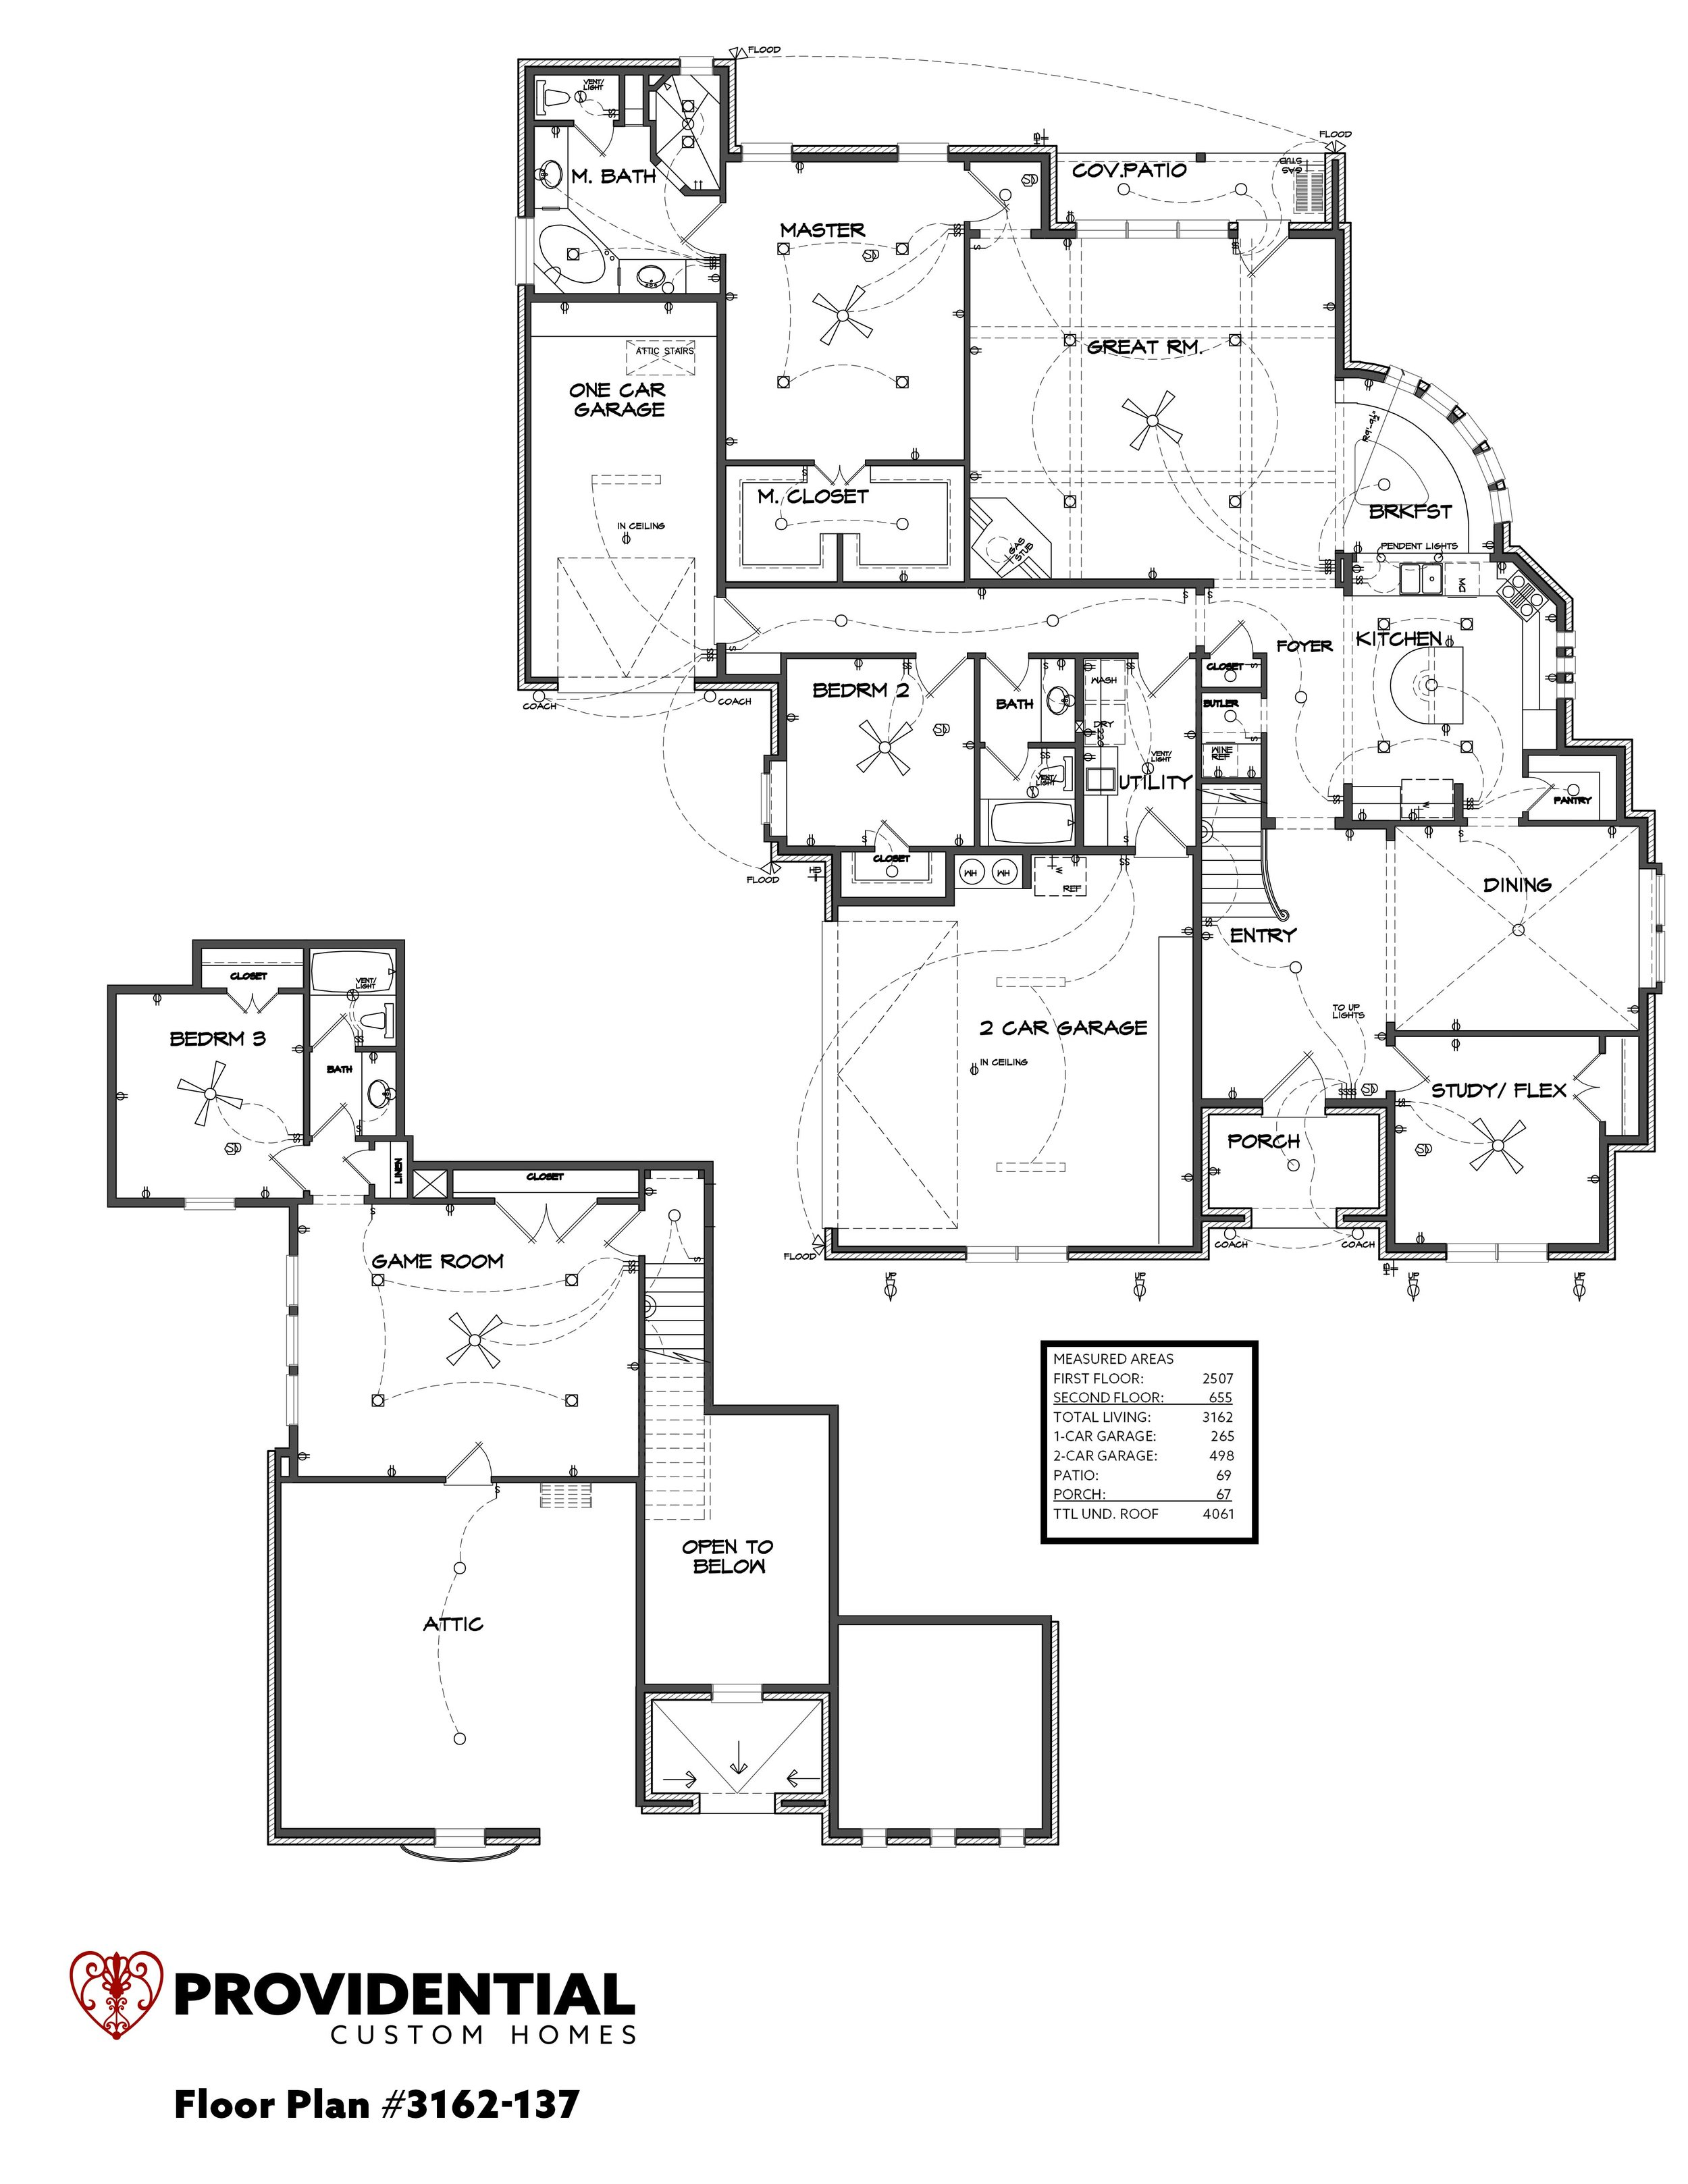 The FLOOR PLAN 3162.jpg